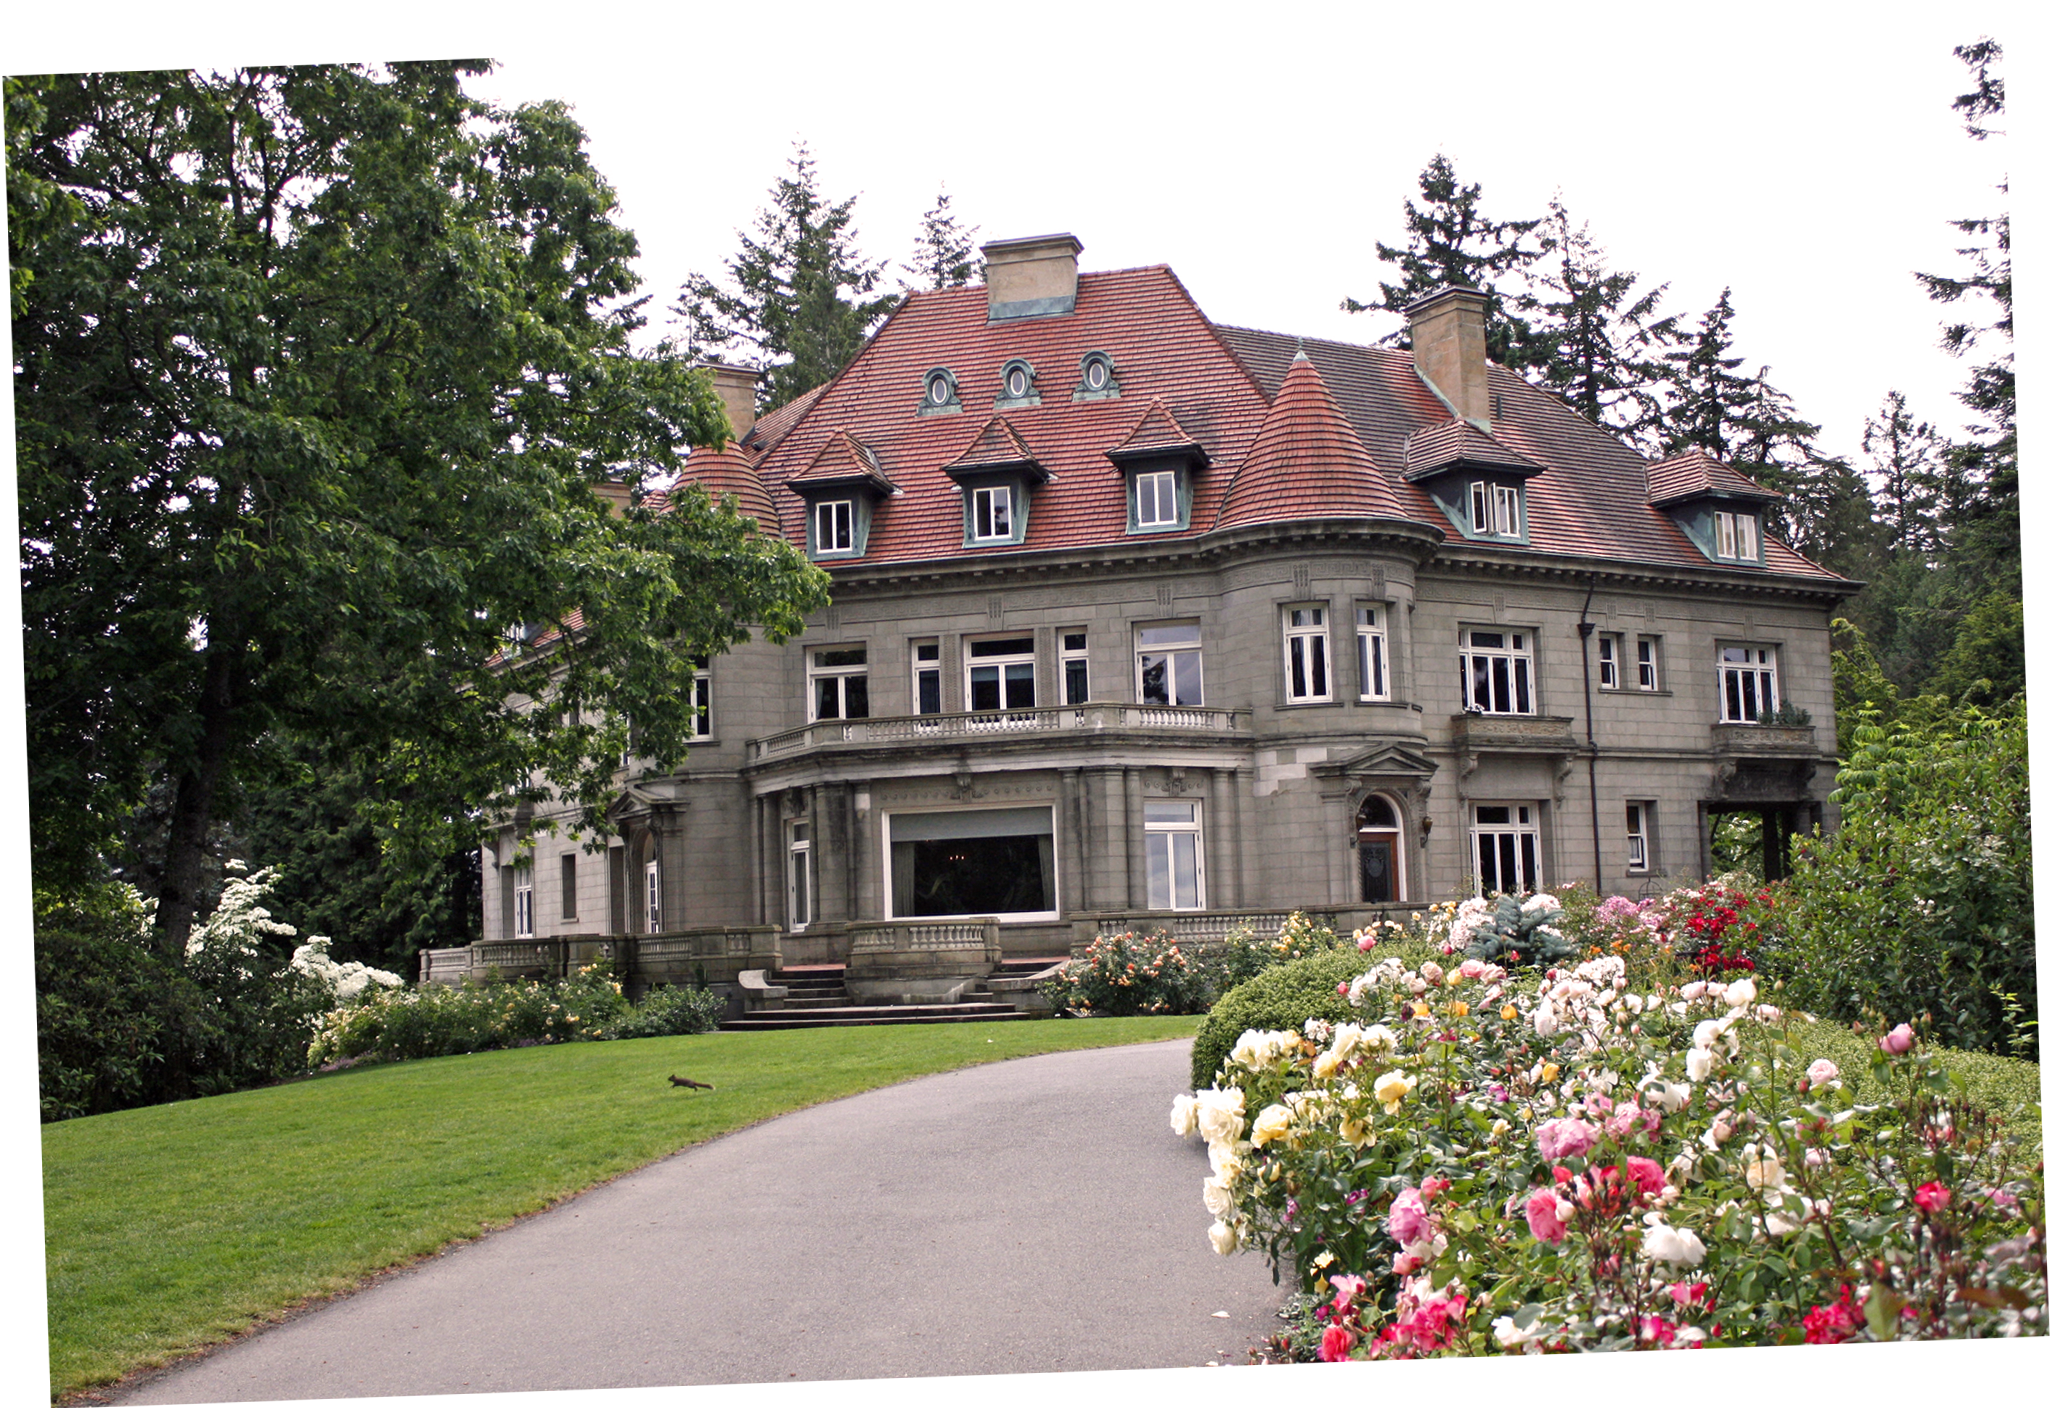 Pittock Mansion, roses in bloom